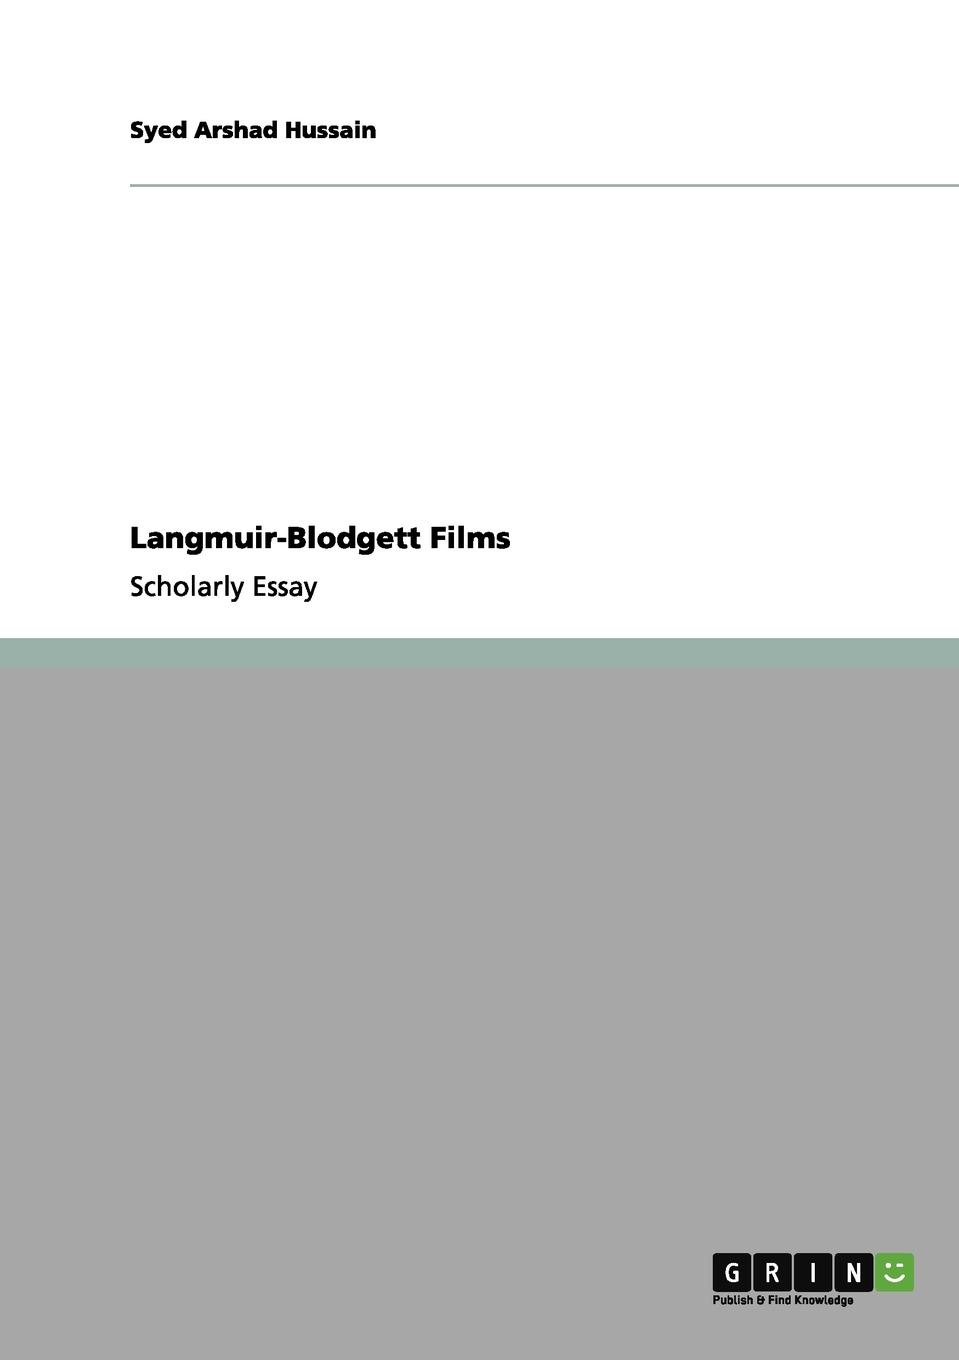 Syed Arshad Hussain Langmuir-Blodgett Films structure of matter